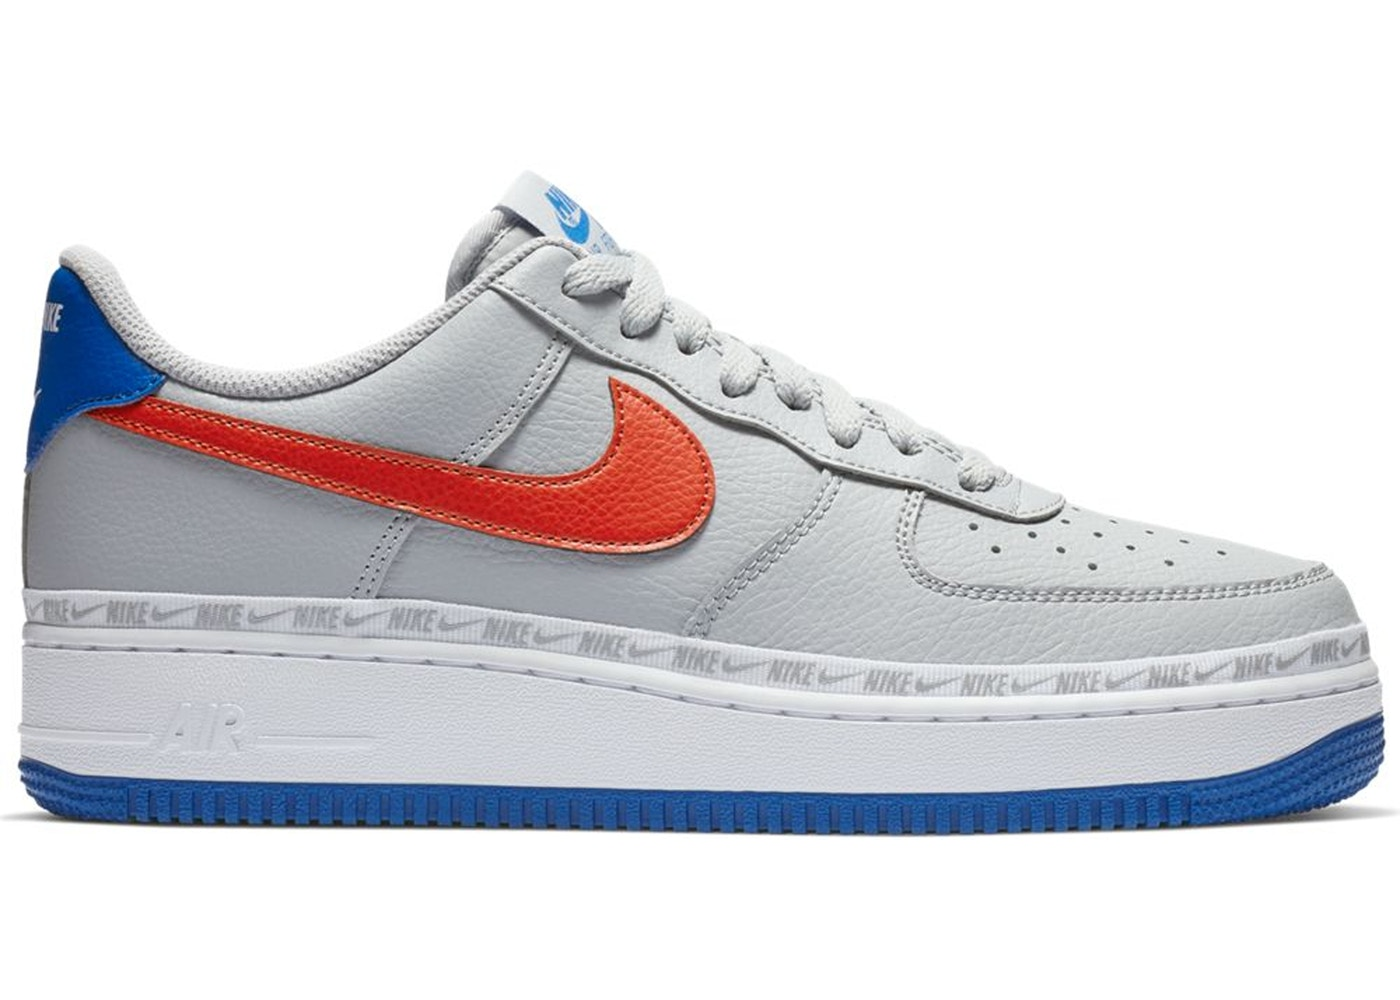 brand new c5dc2 3f760 Nike Air Force 1 Shoes - Release Date